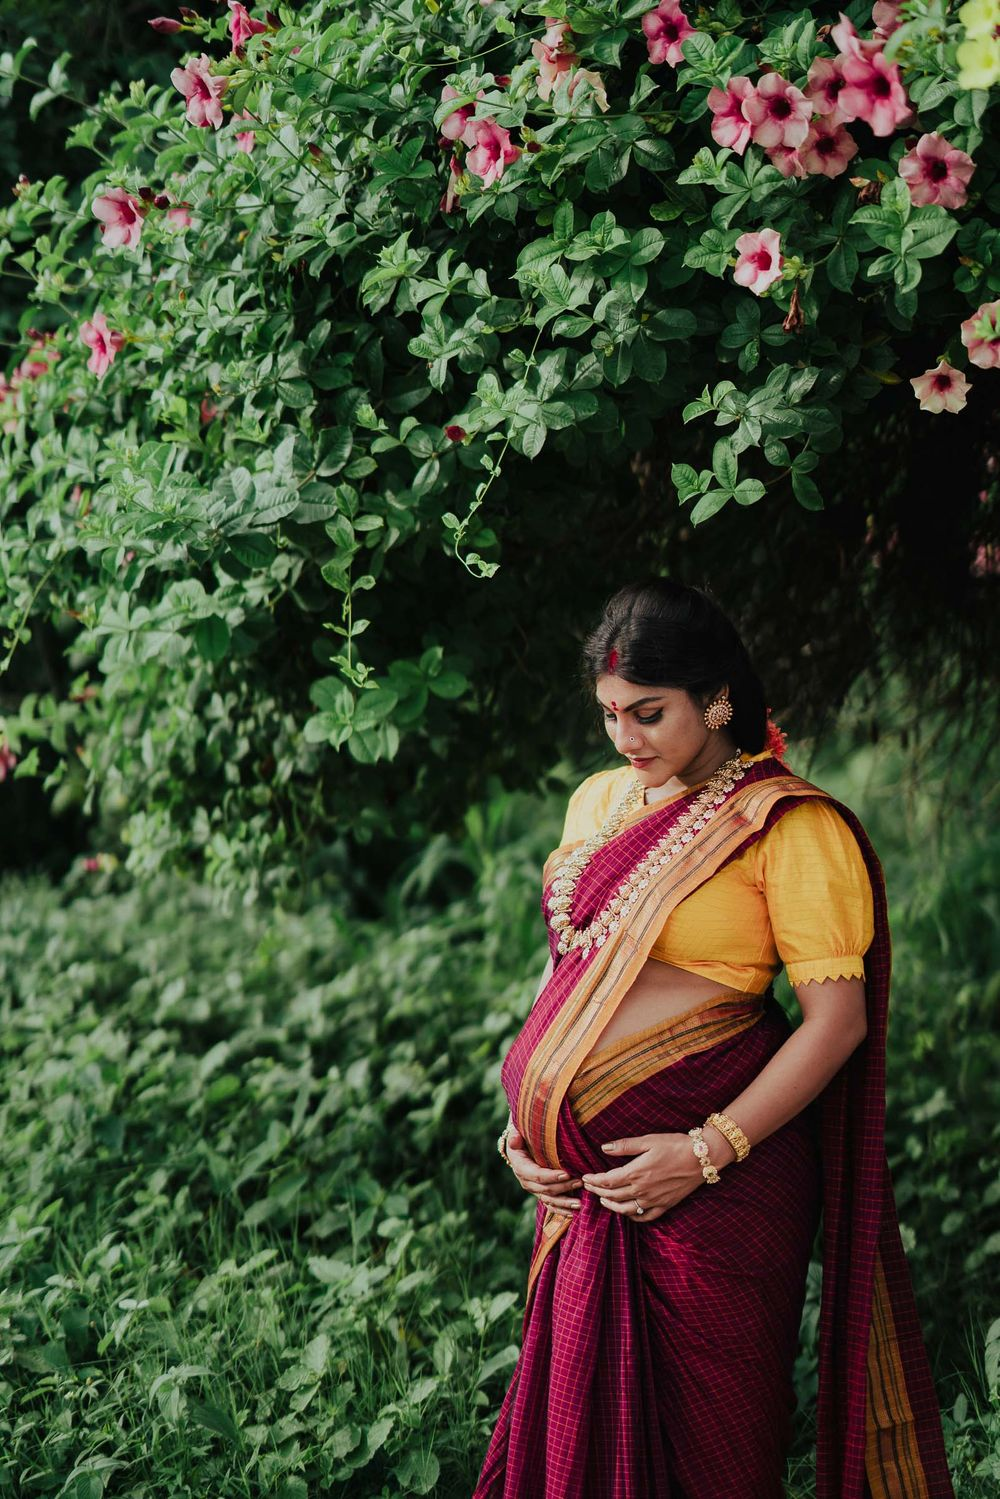 maternity photoshoot in saree, 9 months pregnant woman holding her maternity belly,